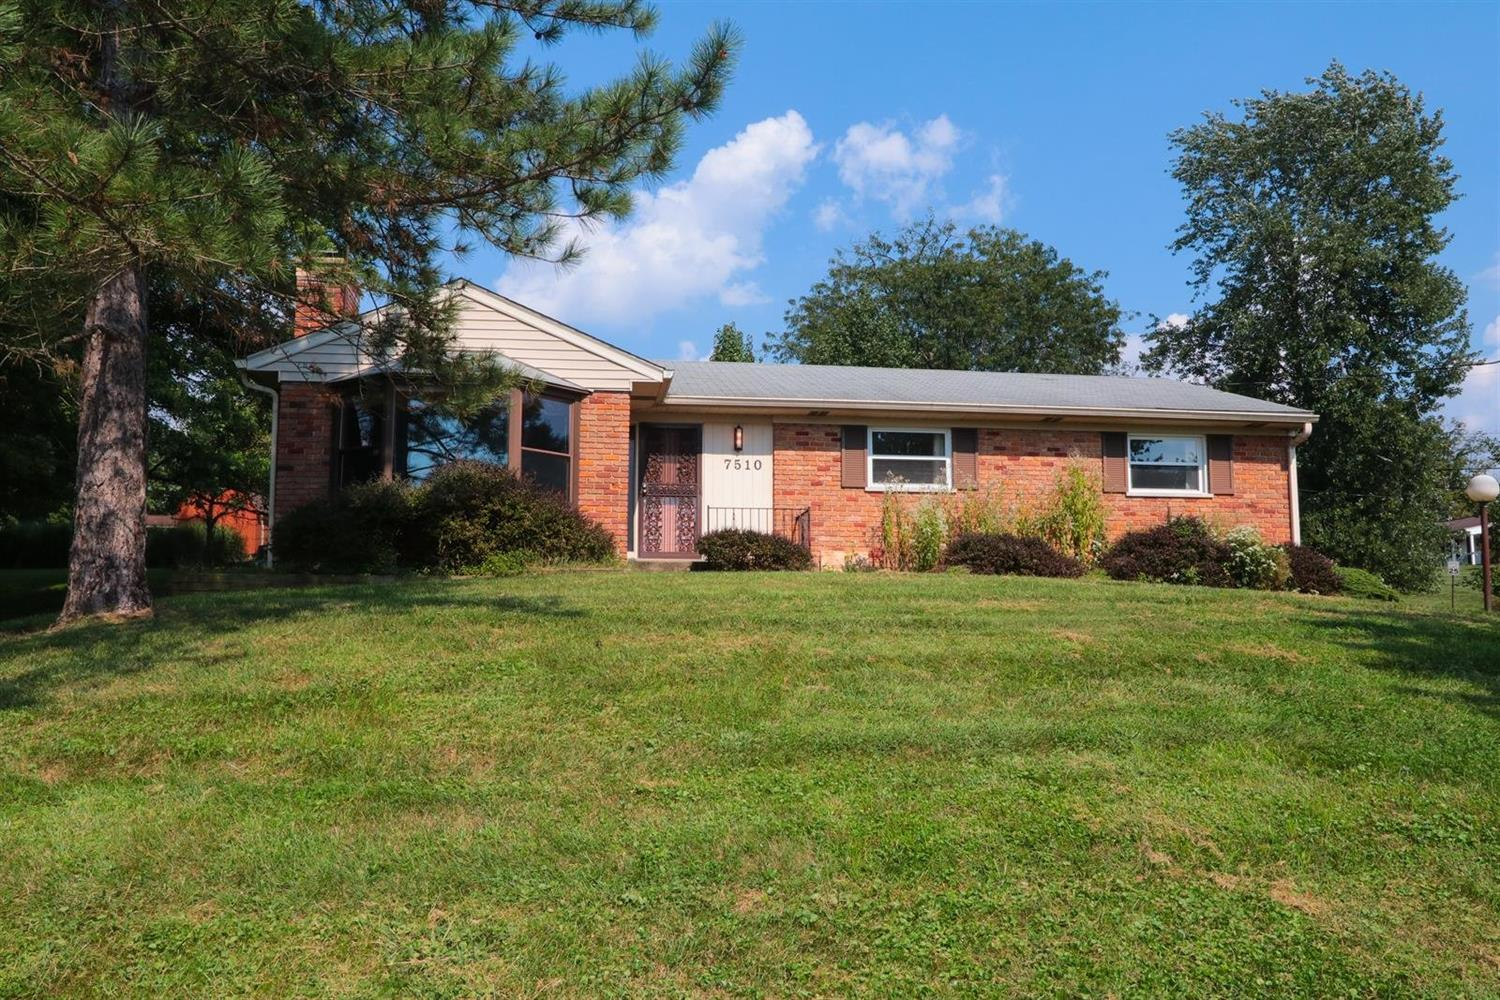 7510 Lawyer Rd Anderson Twp., OH